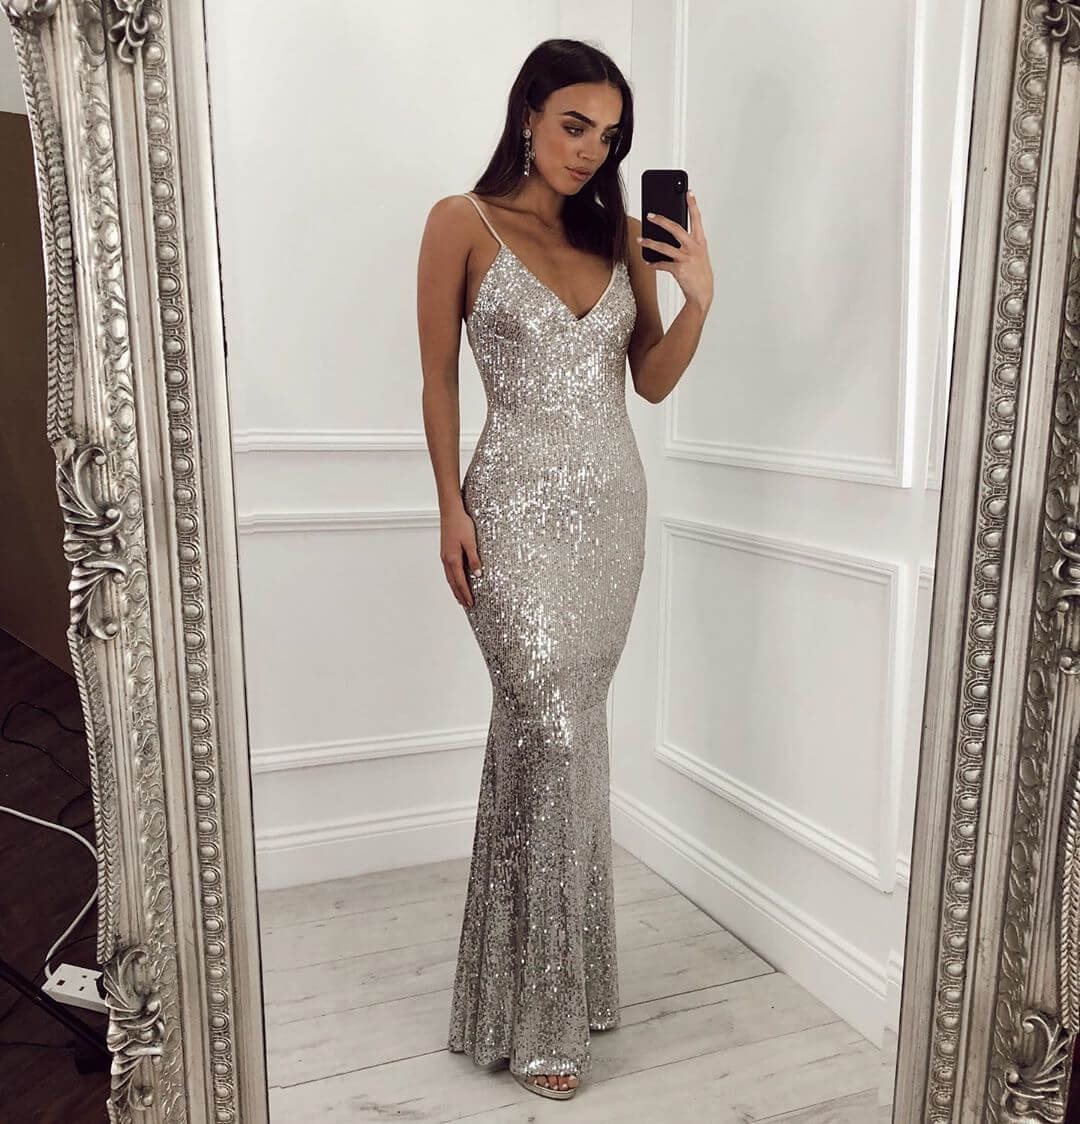 New Year's Eve Won't Feel Overrated In These Dresses